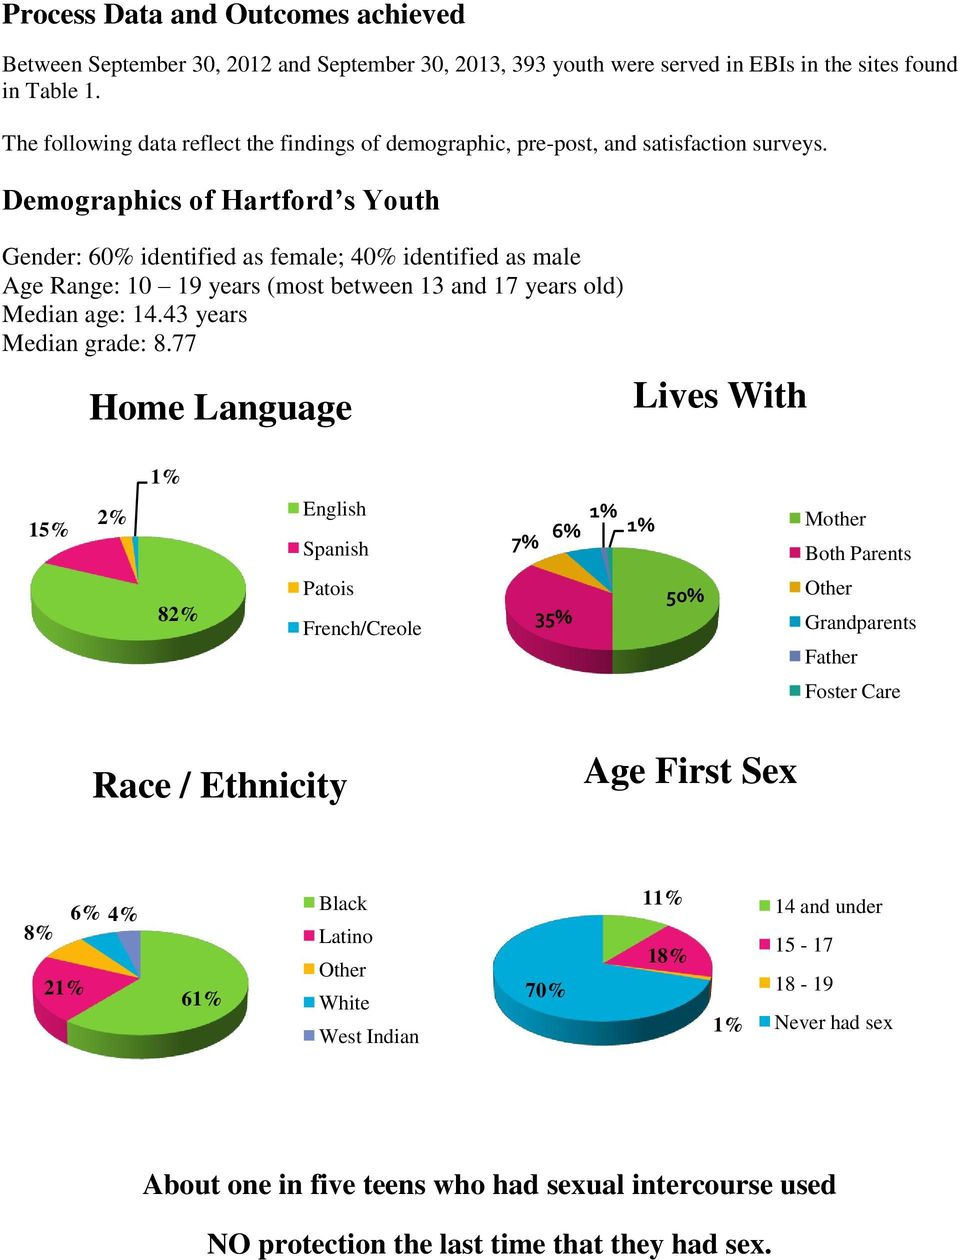 Demographics of Hartford s Youth Gender: 60% identified as female; 40% identified as male Age Range: 10 19 years (most between 13 and 17 years old) Median age: 14.43 years Median grade: 8.